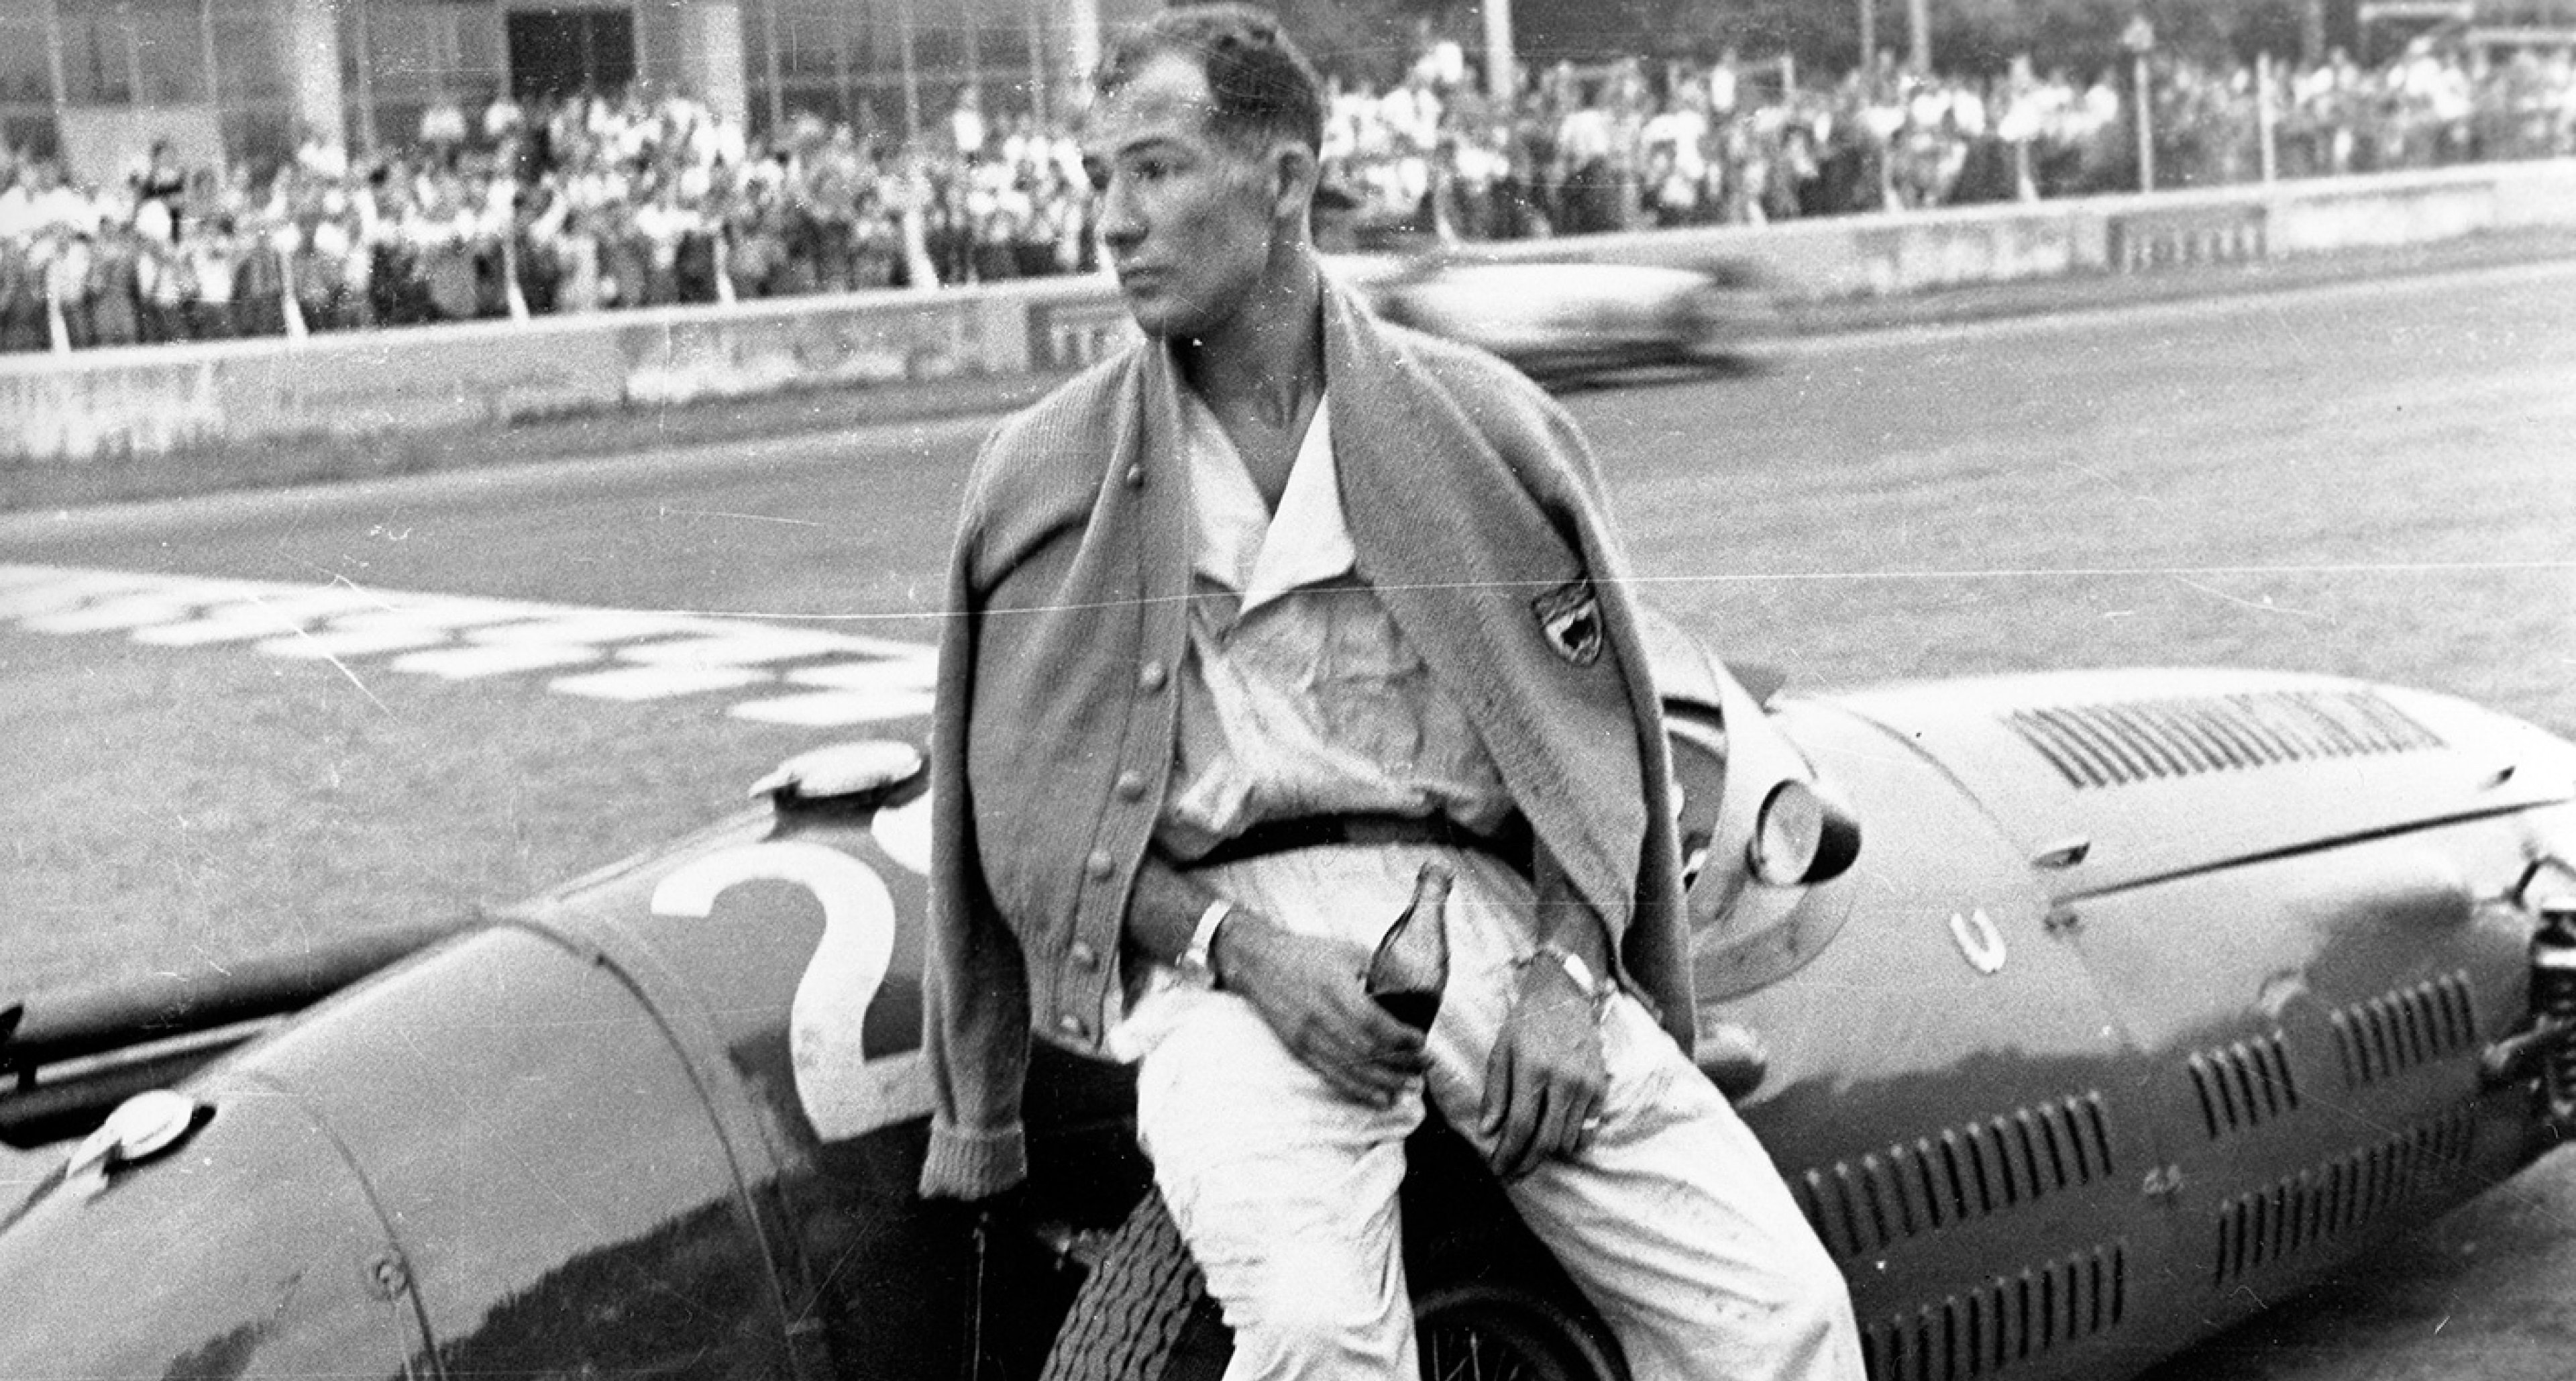 Moss cooling off in the pits after retiring from the Monza GP, 1954